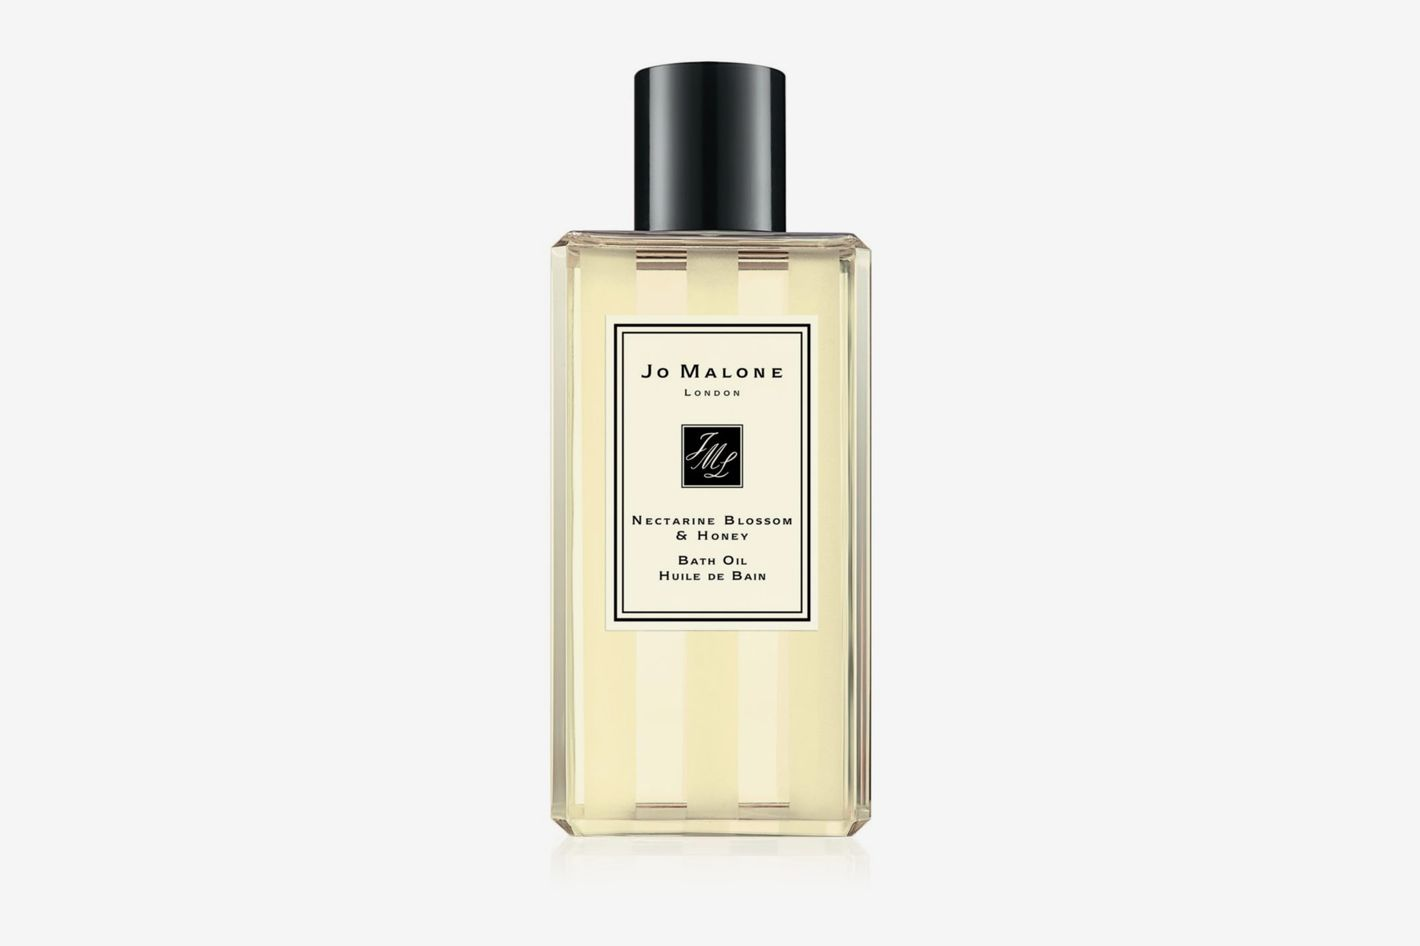 Jo Malone London Nectarine Blossom & Honey Bath Oil